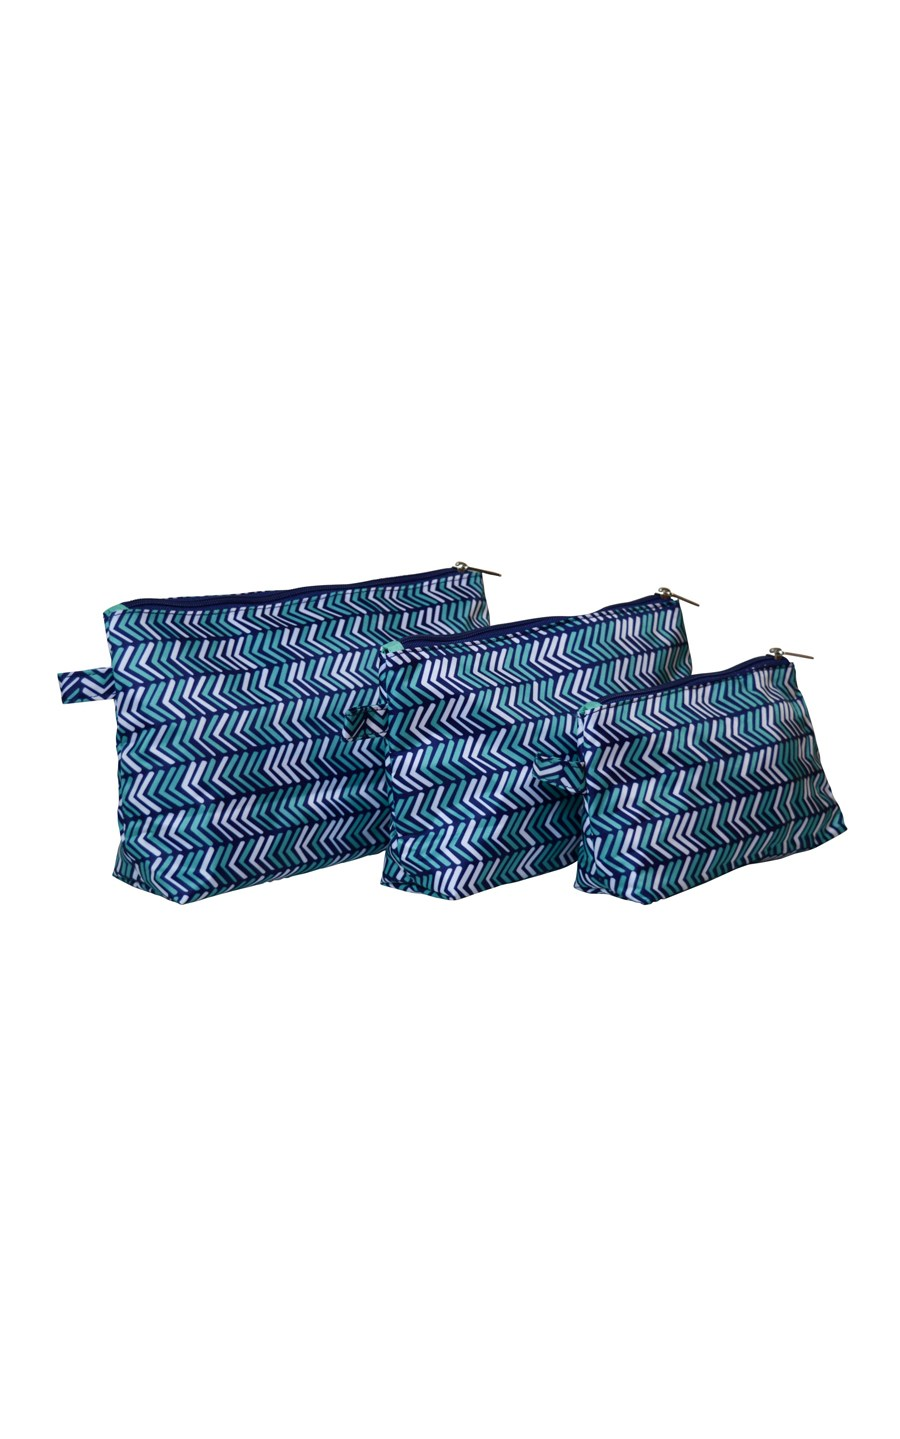 Vacay This Way 3 Piece Cosmetic Bag Set